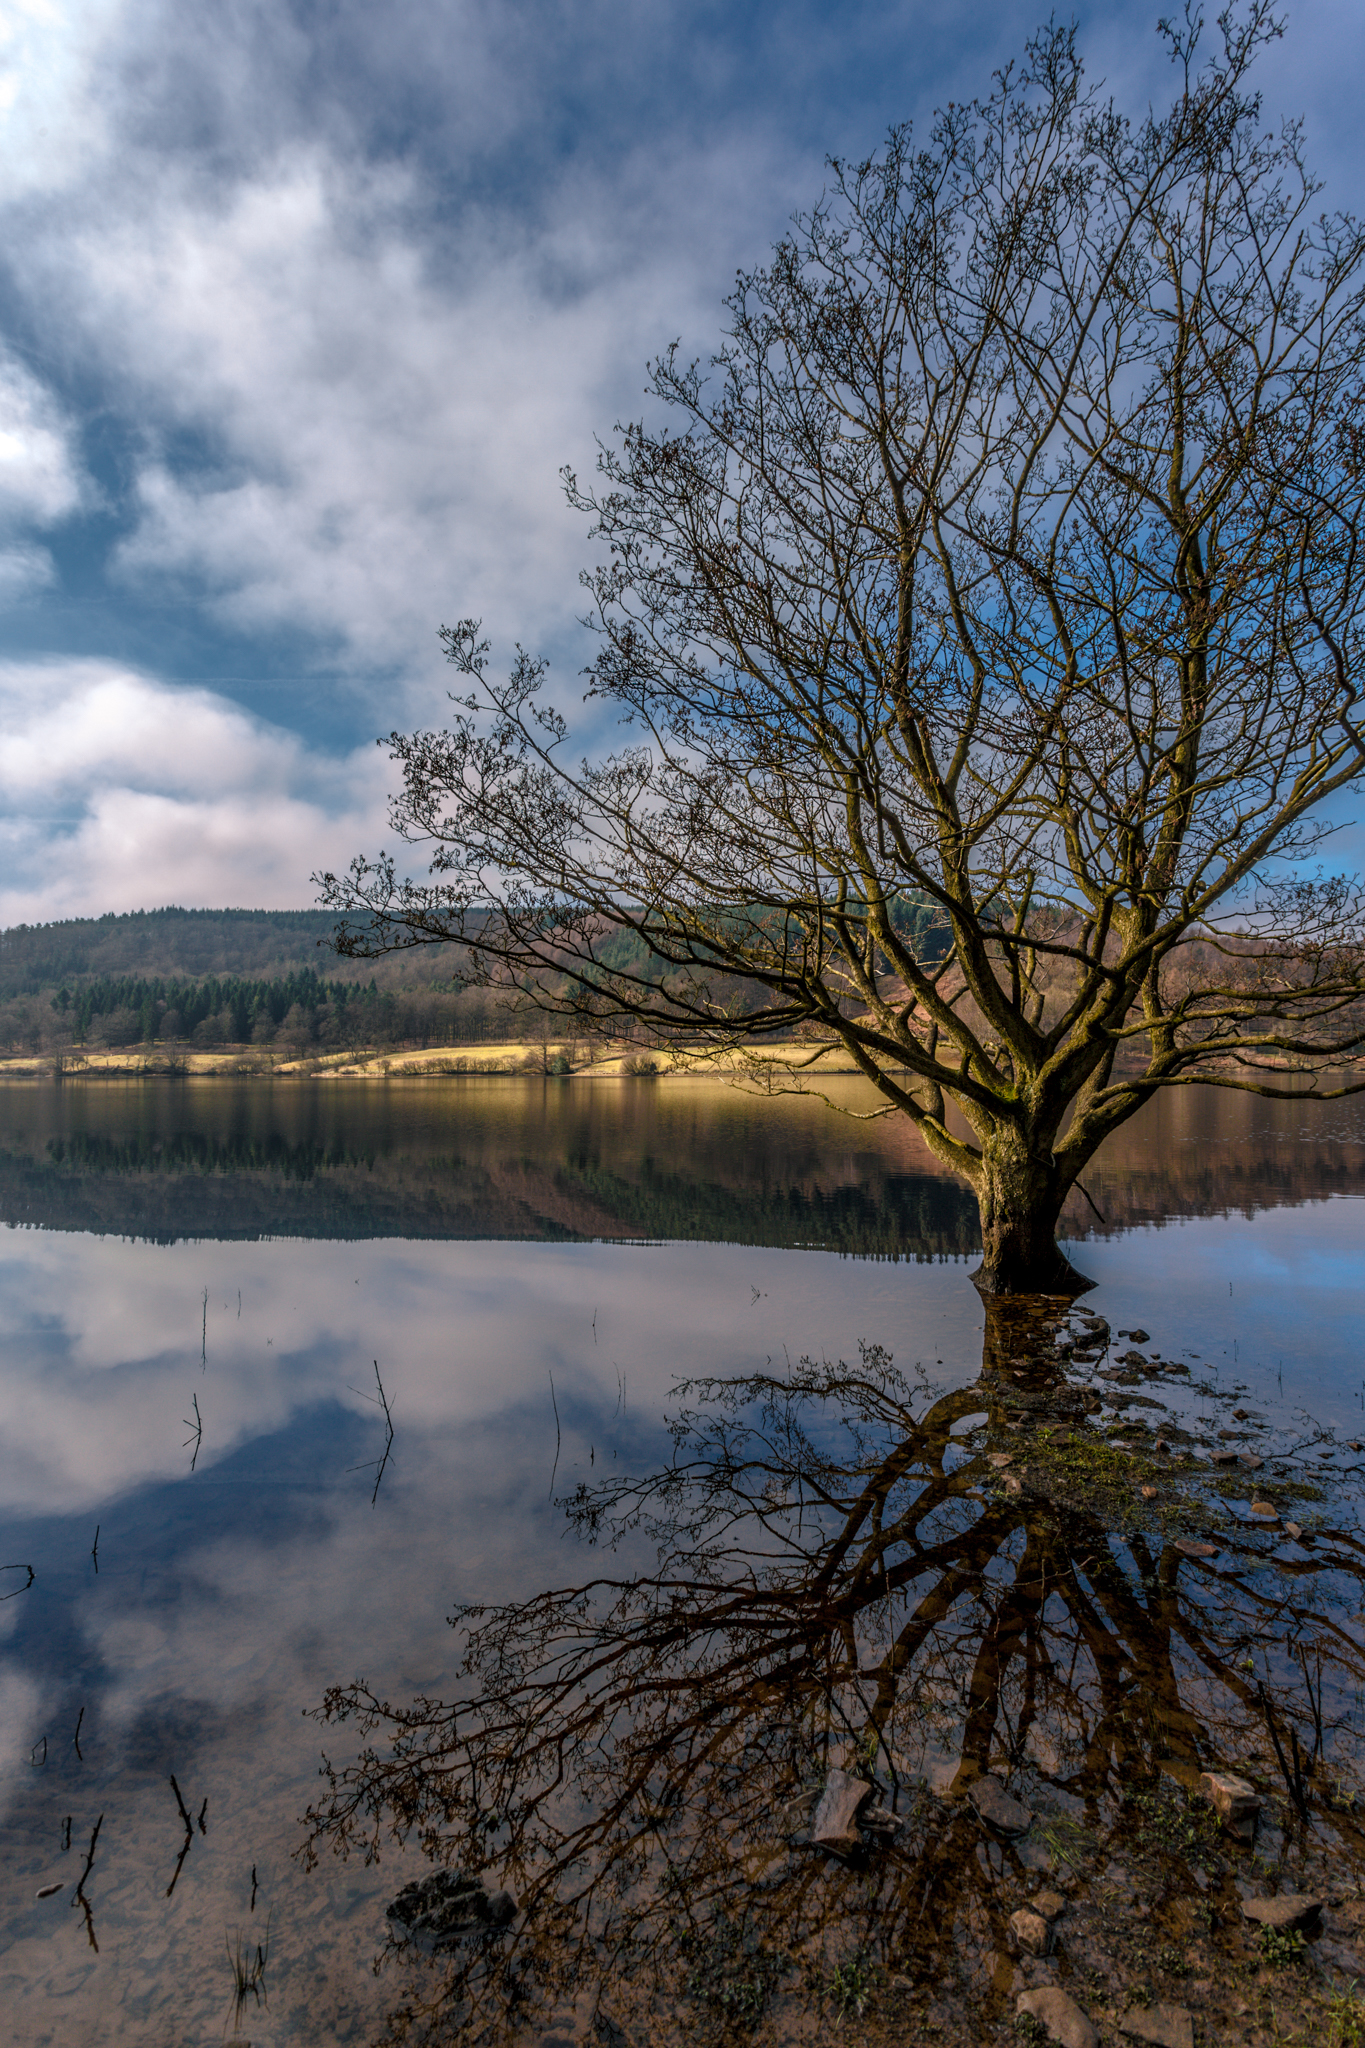 I came across this tree living happily on the side of the lake. The way the light was it created a great reflection and there was a lovely reflection from the land in the background too. It looked slightly surreal to me so I thought it would make a nice picture.